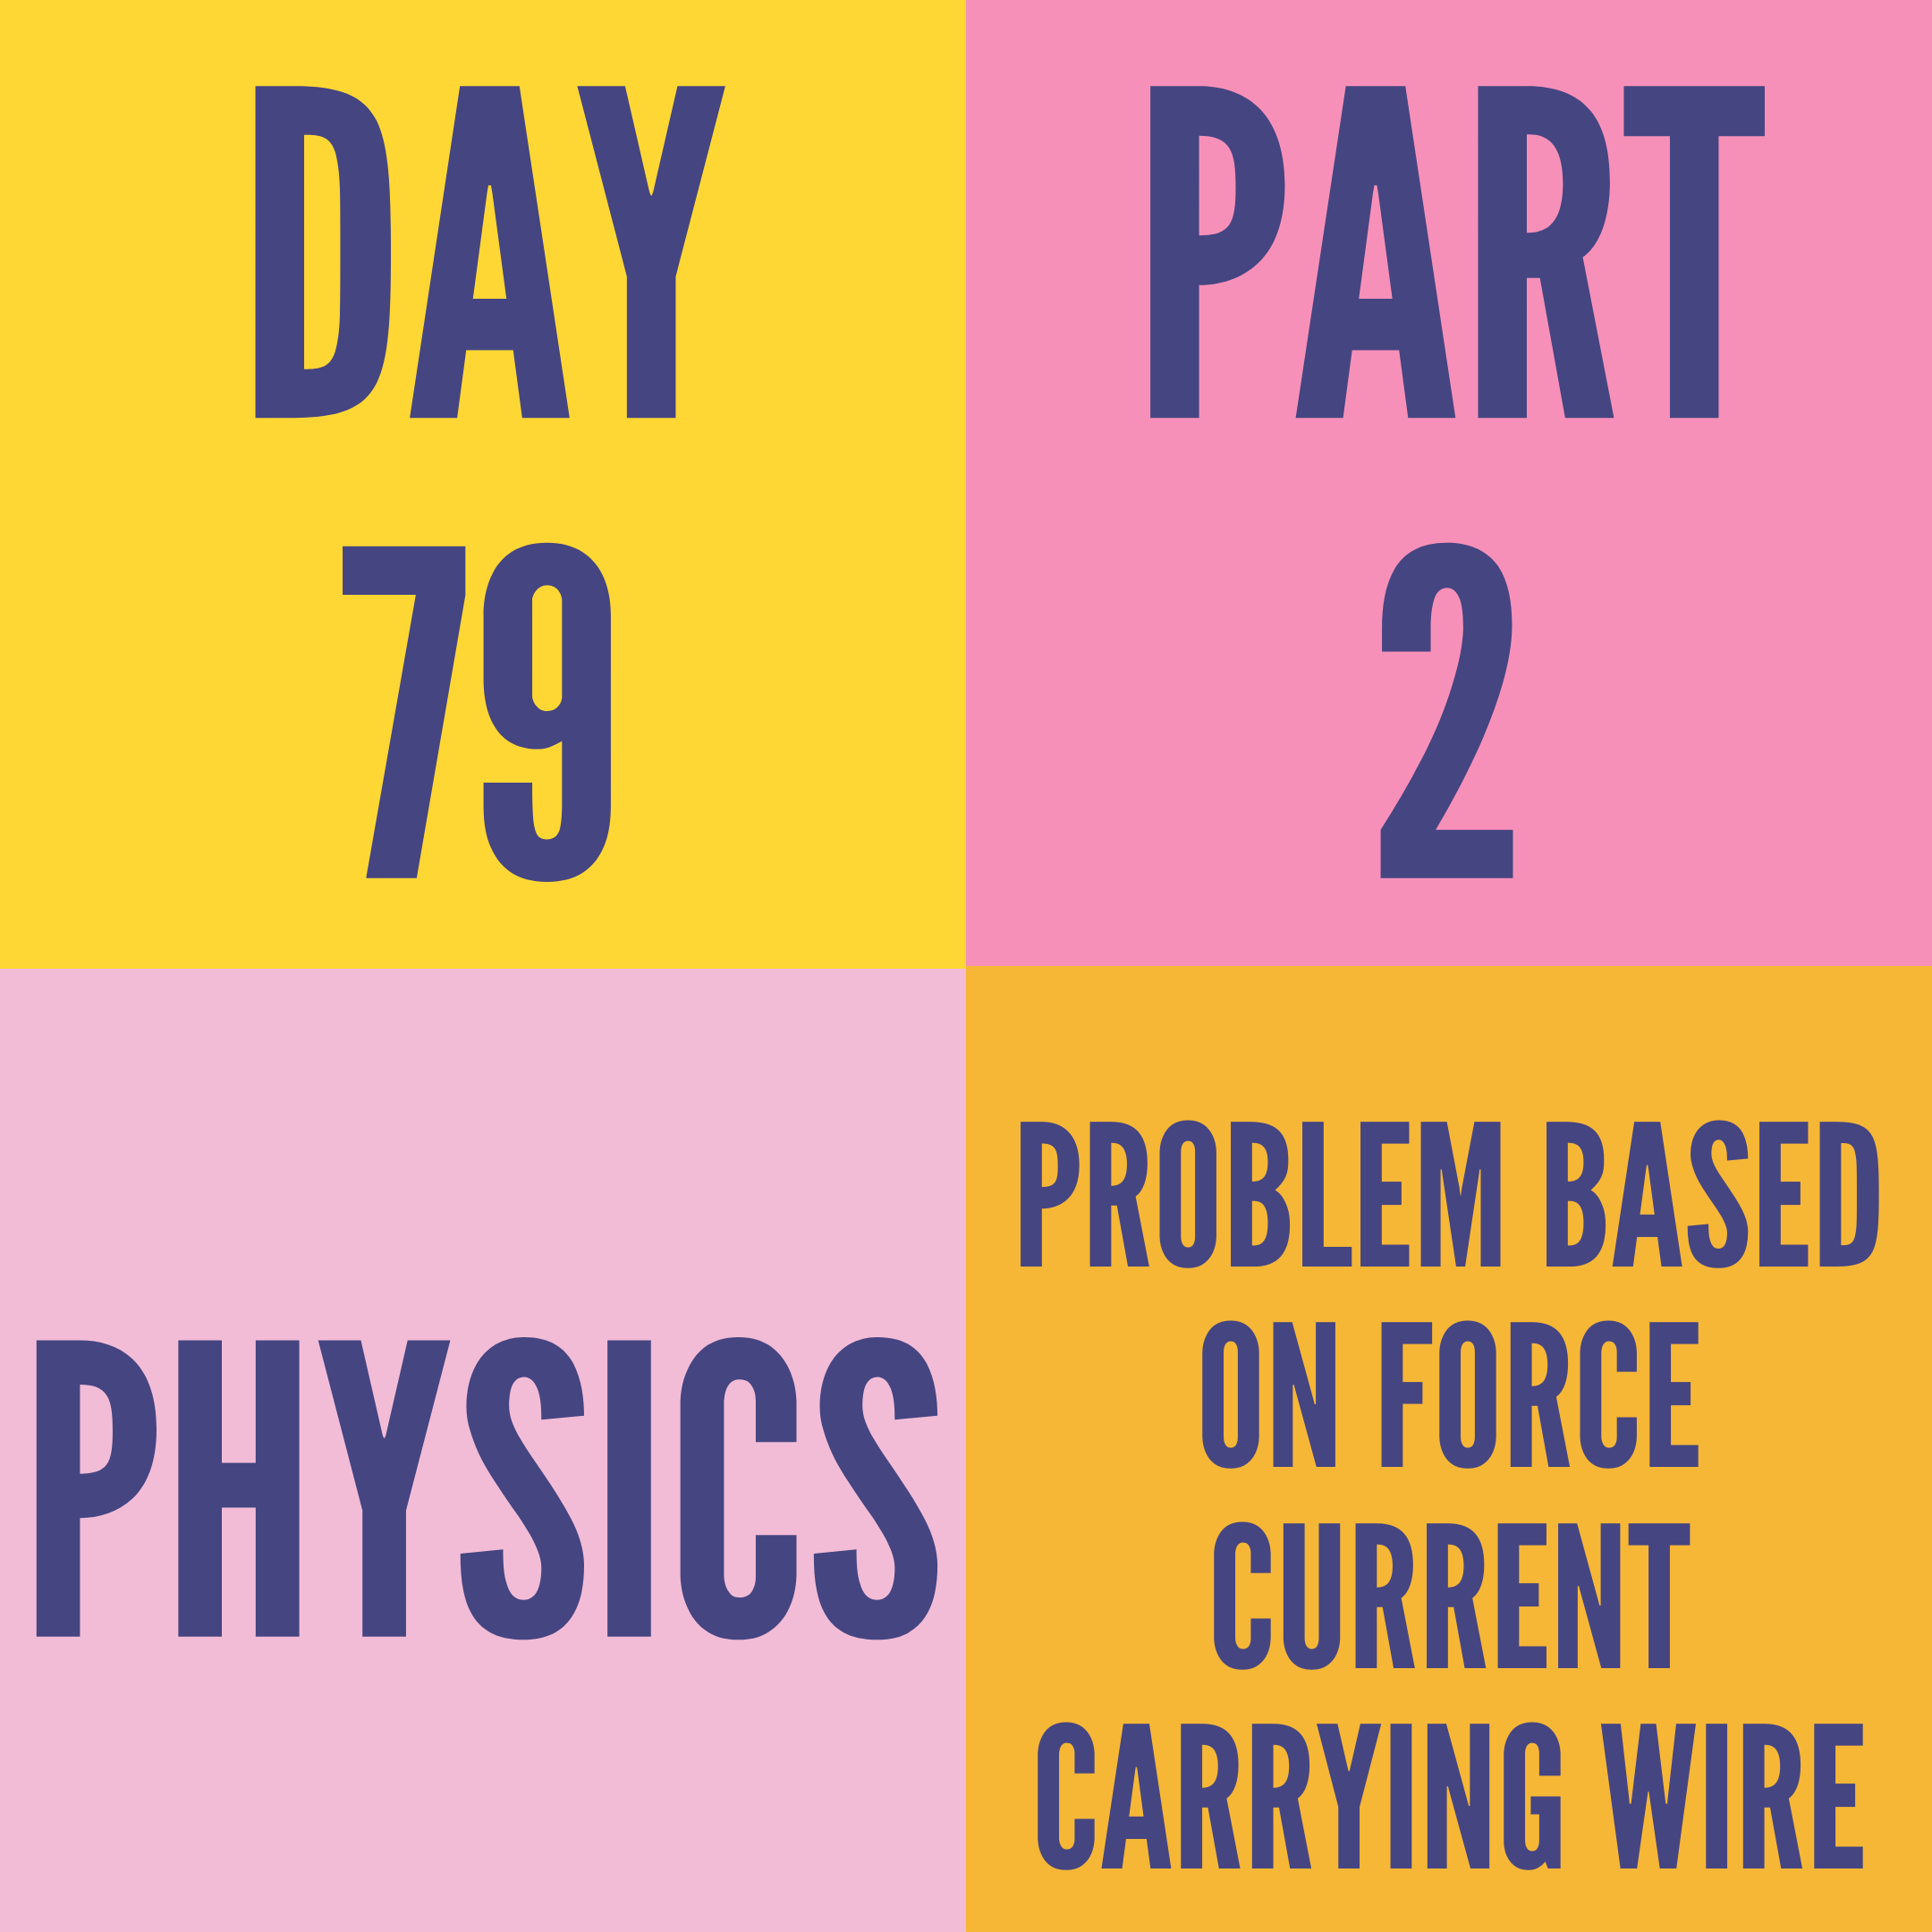 DAY-79 PART-2 PROBLEM BASED ON FORCE CURRENT CARRYING WIRE